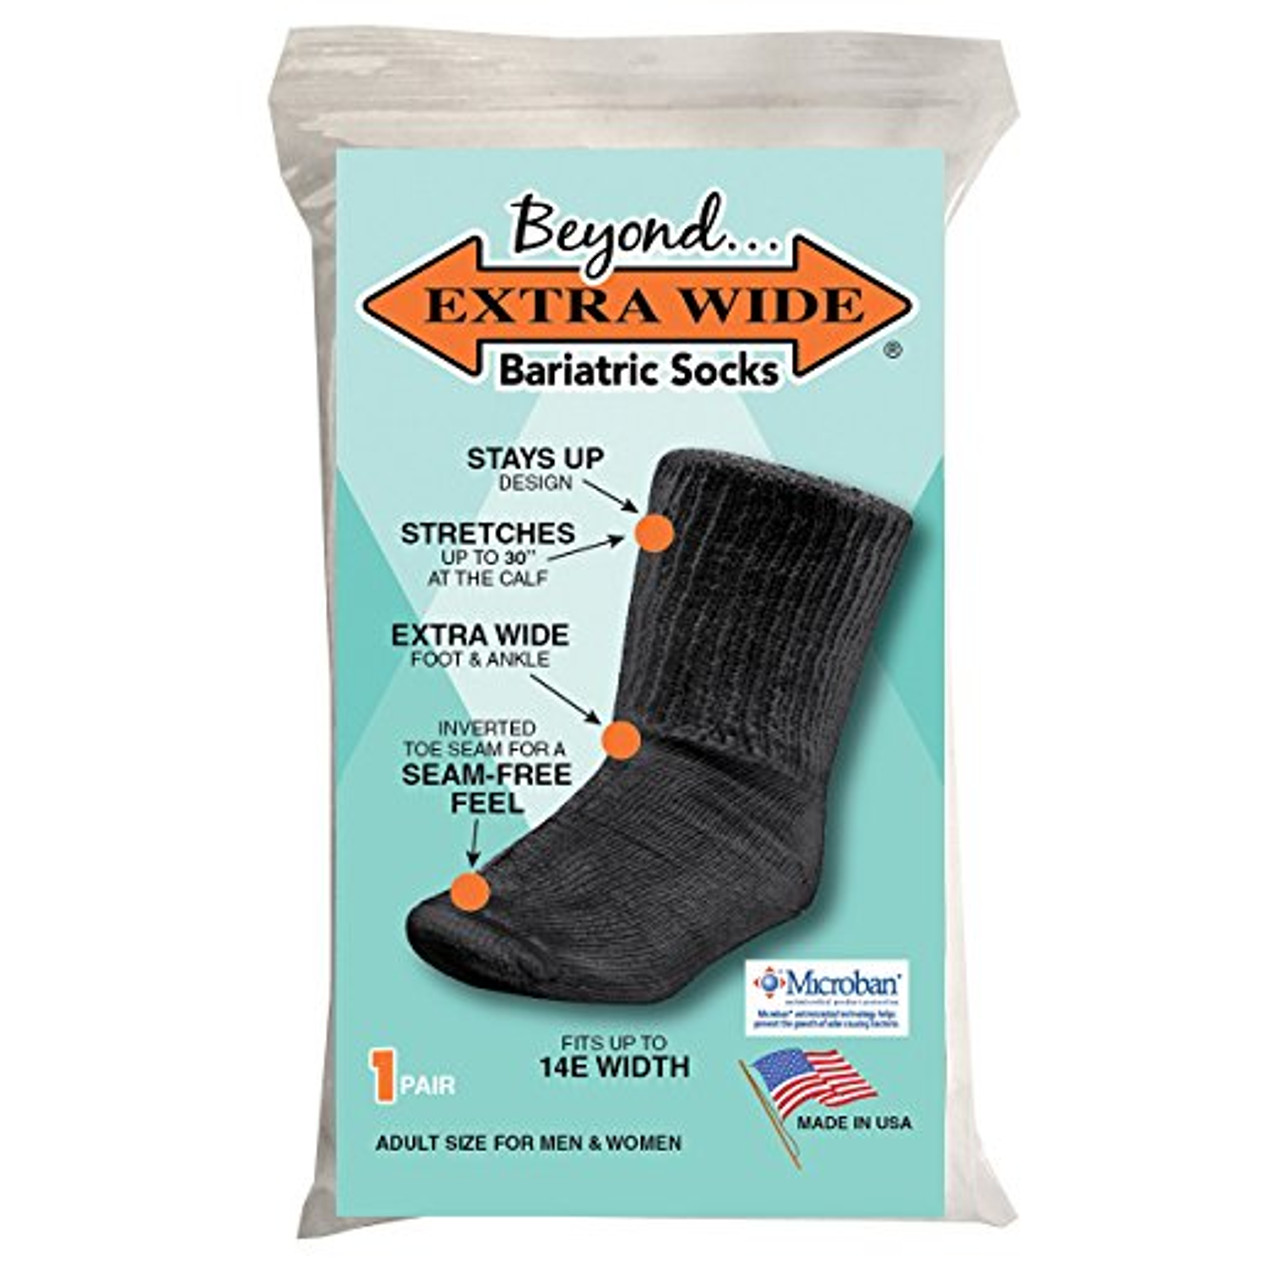 Beyond Extra Wide Bariatric Socks for Extreme Lymphedema